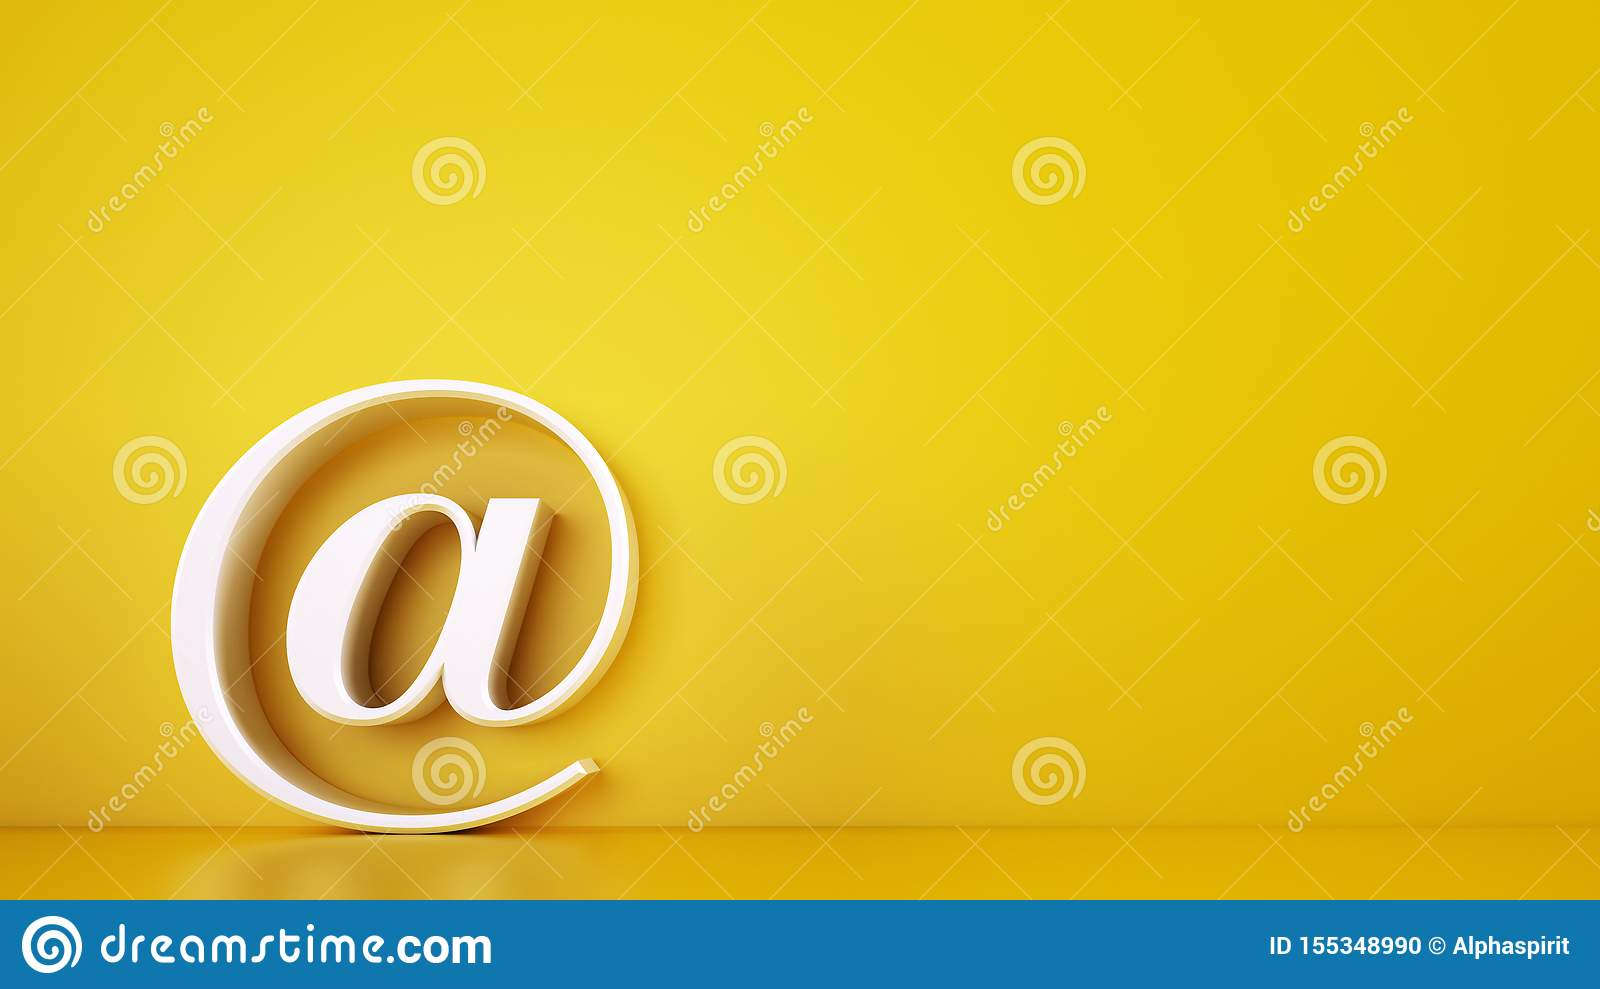 3D icon of a big at on yellow background. Rendering